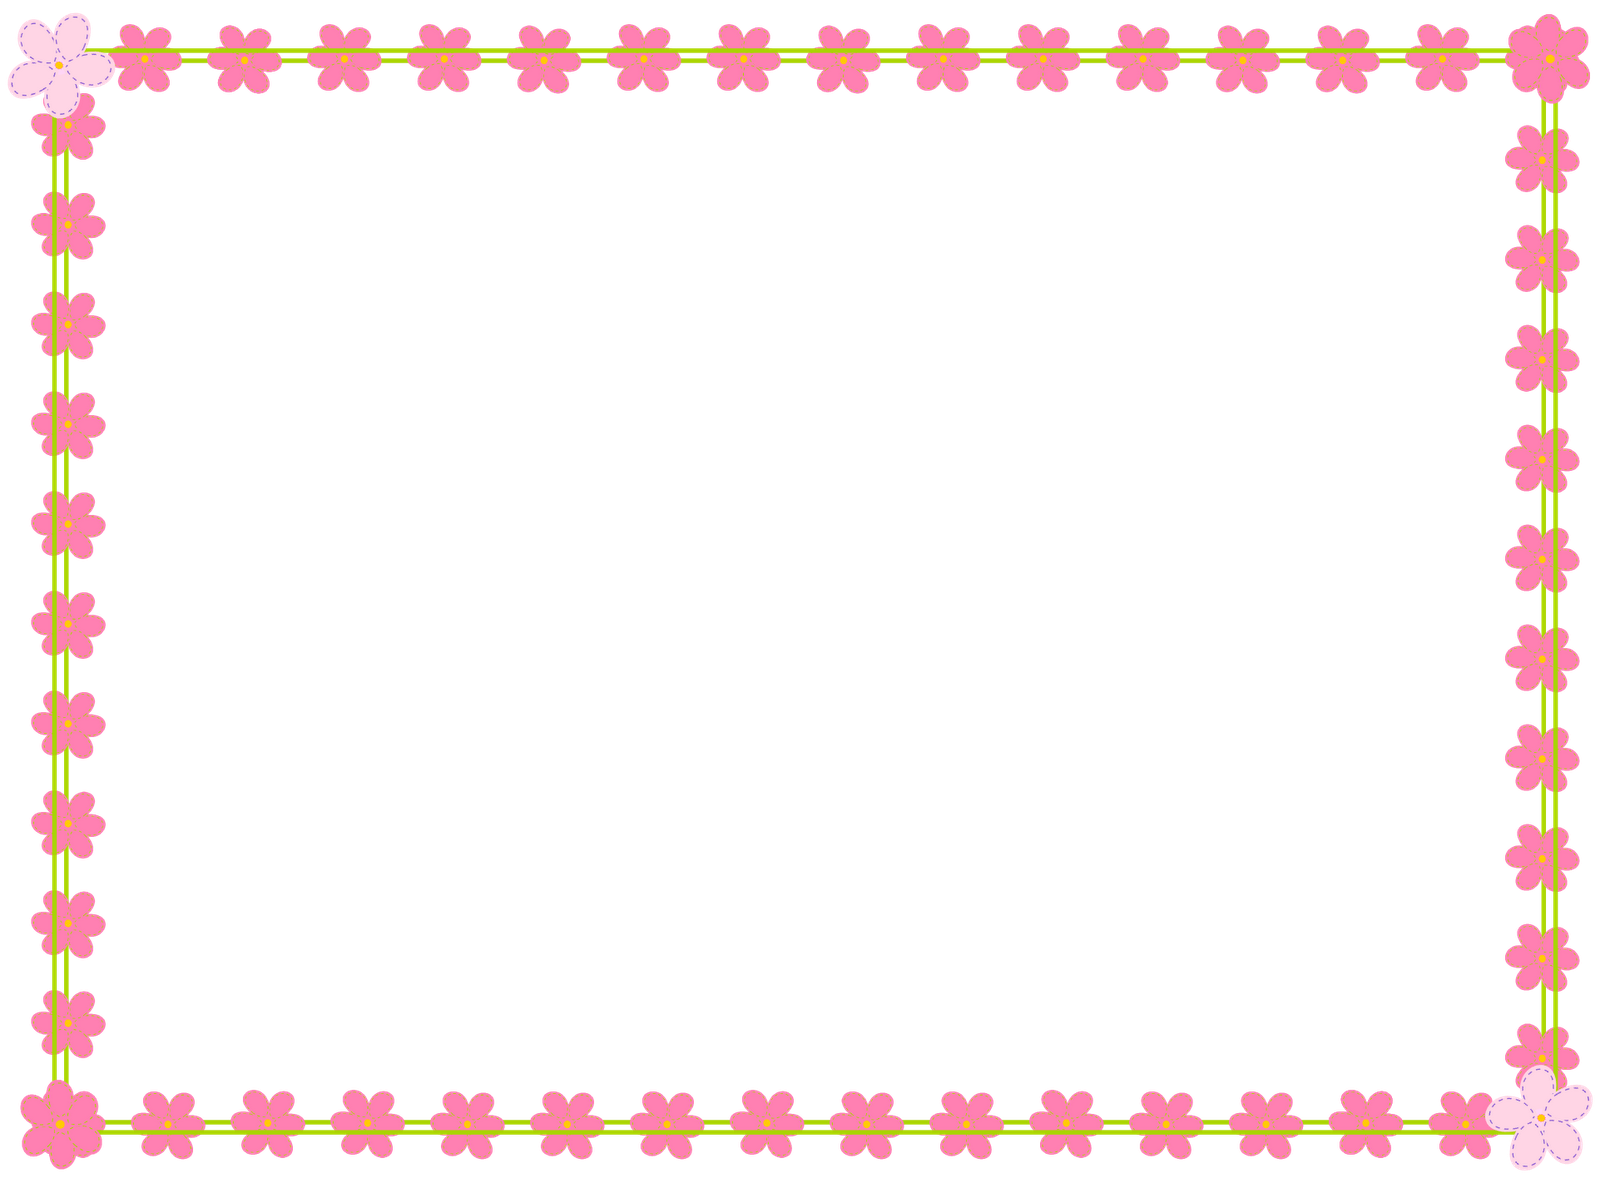 Free digital flower frames. Clipart dolphin border paper